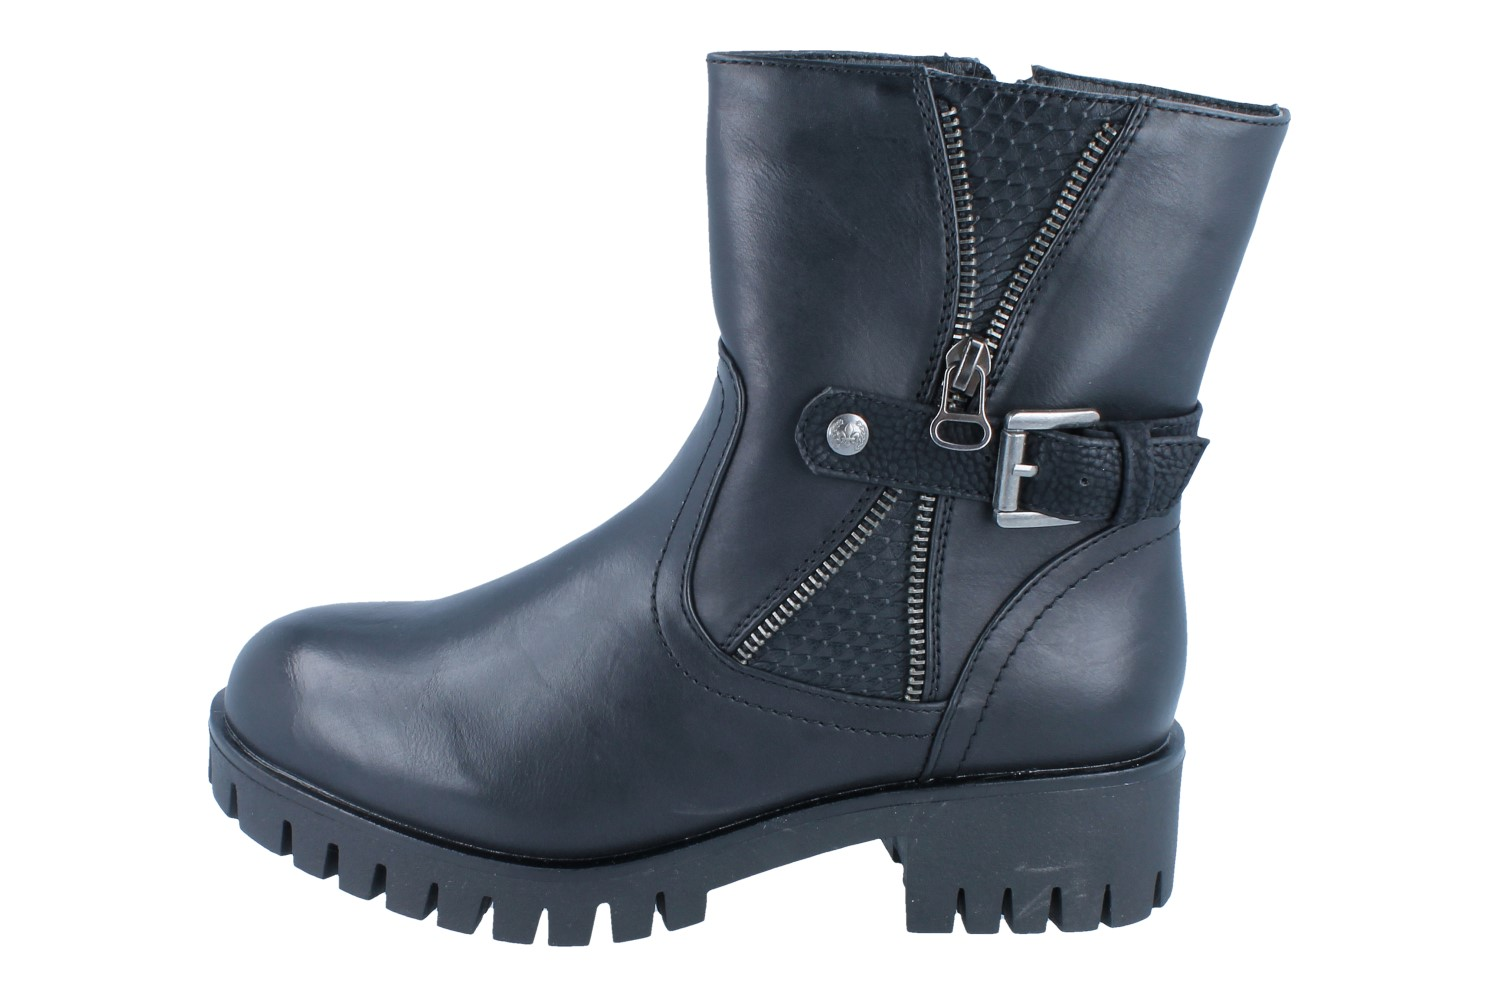 Rieker Schwarz Schwarz Rieker Schwarz Stiefel Rieker Stiefel Rieker Stiefel Stiefel Bravaskopjiewildebuk Bravaskopjiewildebuk Bravaskopjiewildebuk 7gy6bf